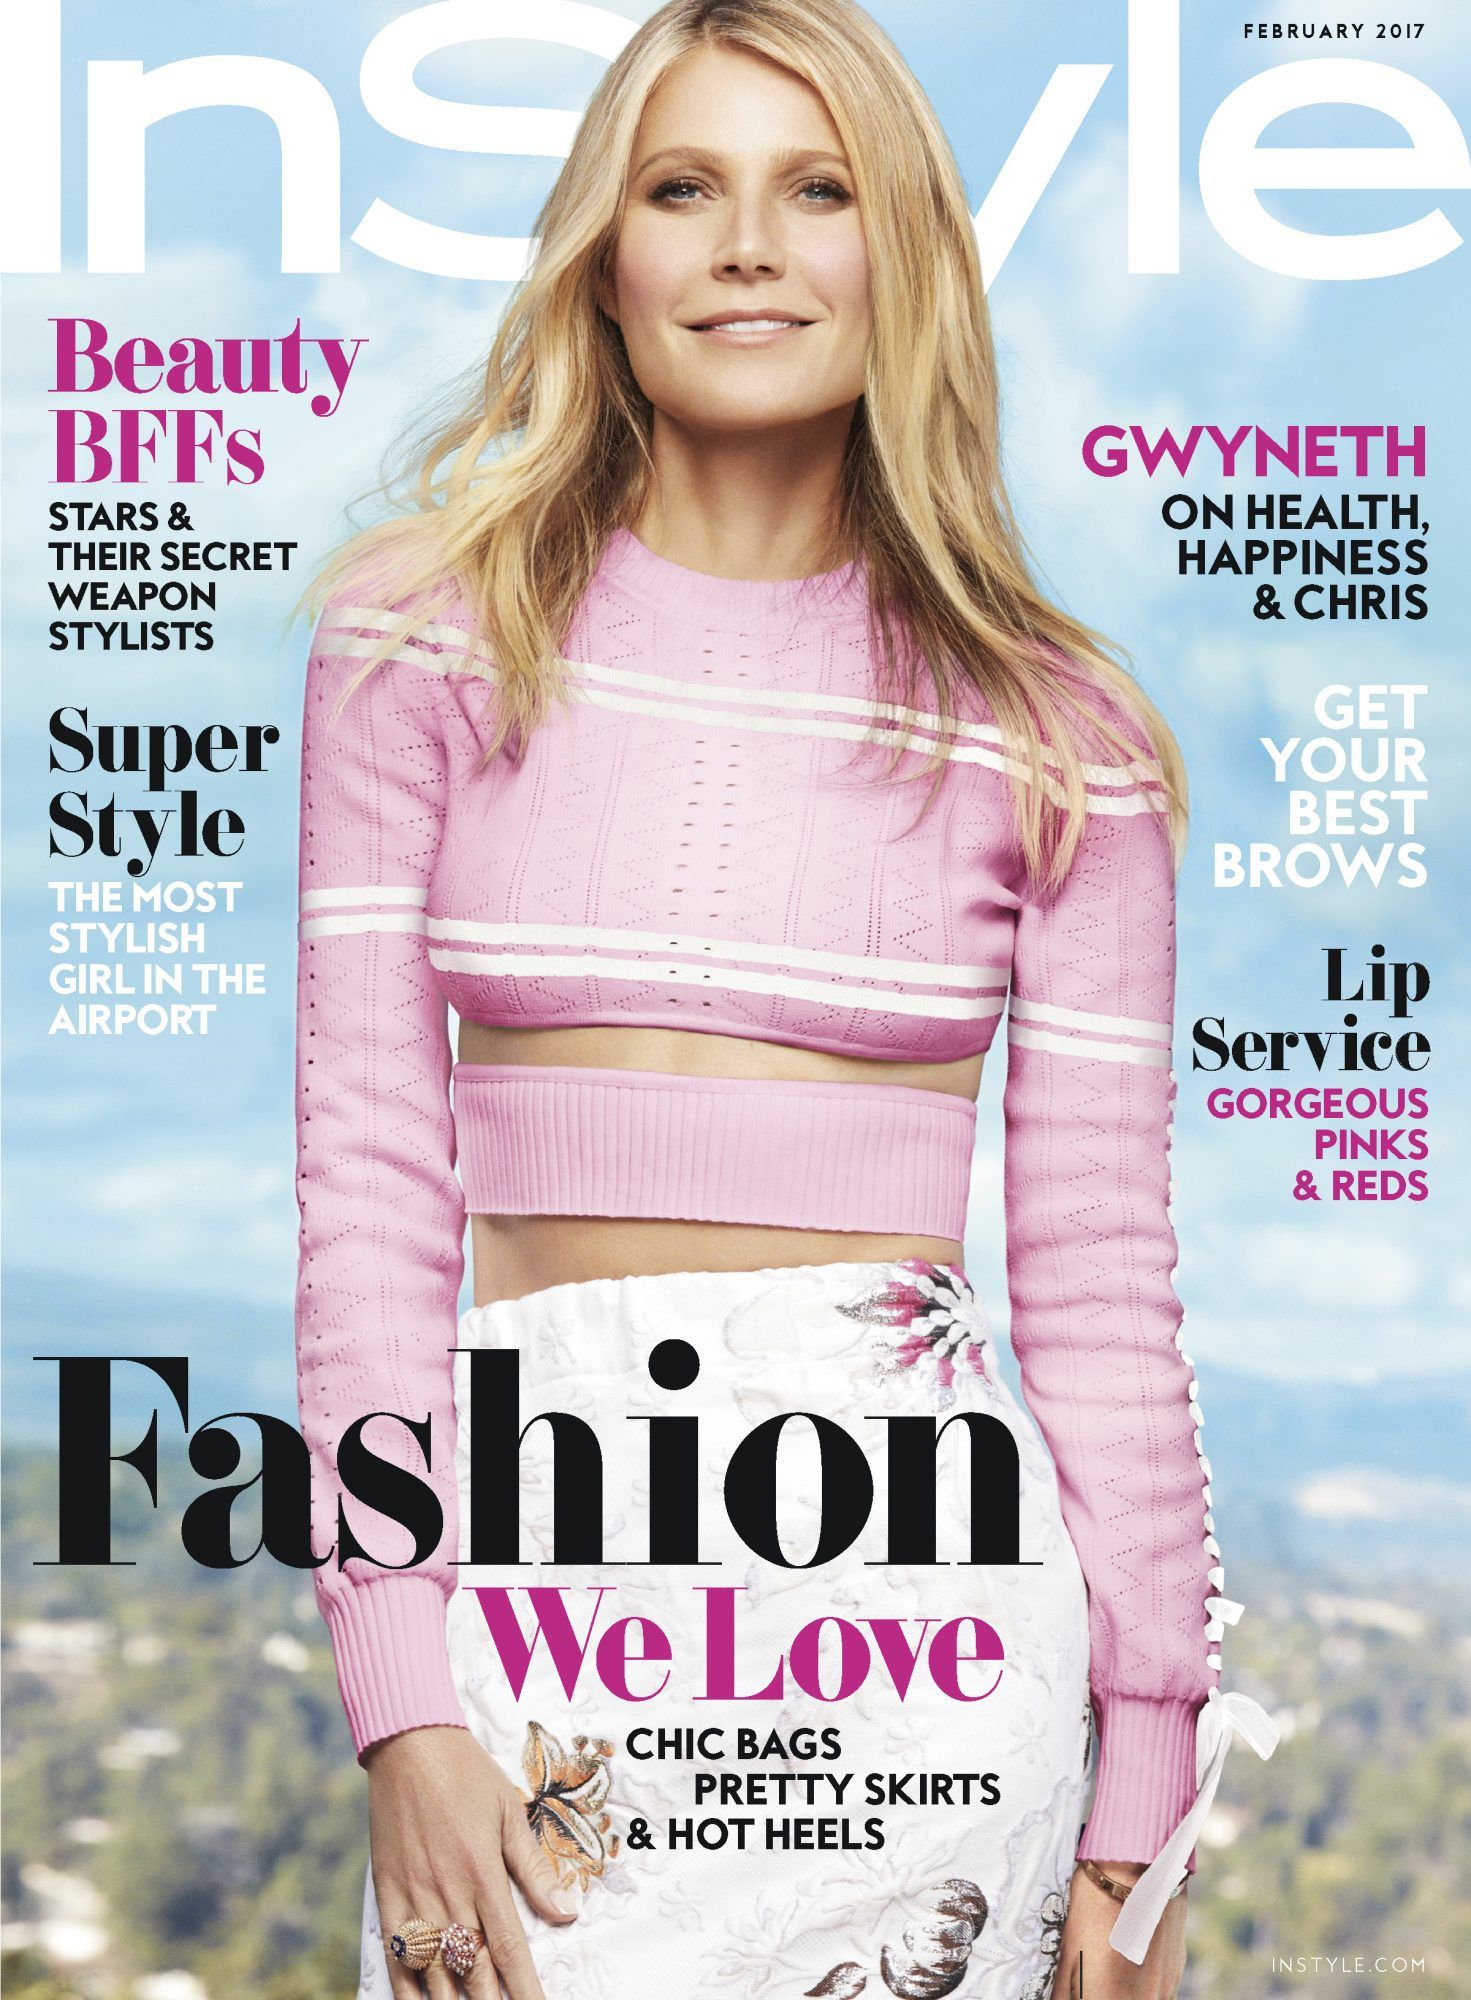 Gwyneth Paltrow Instyle February Cover Story